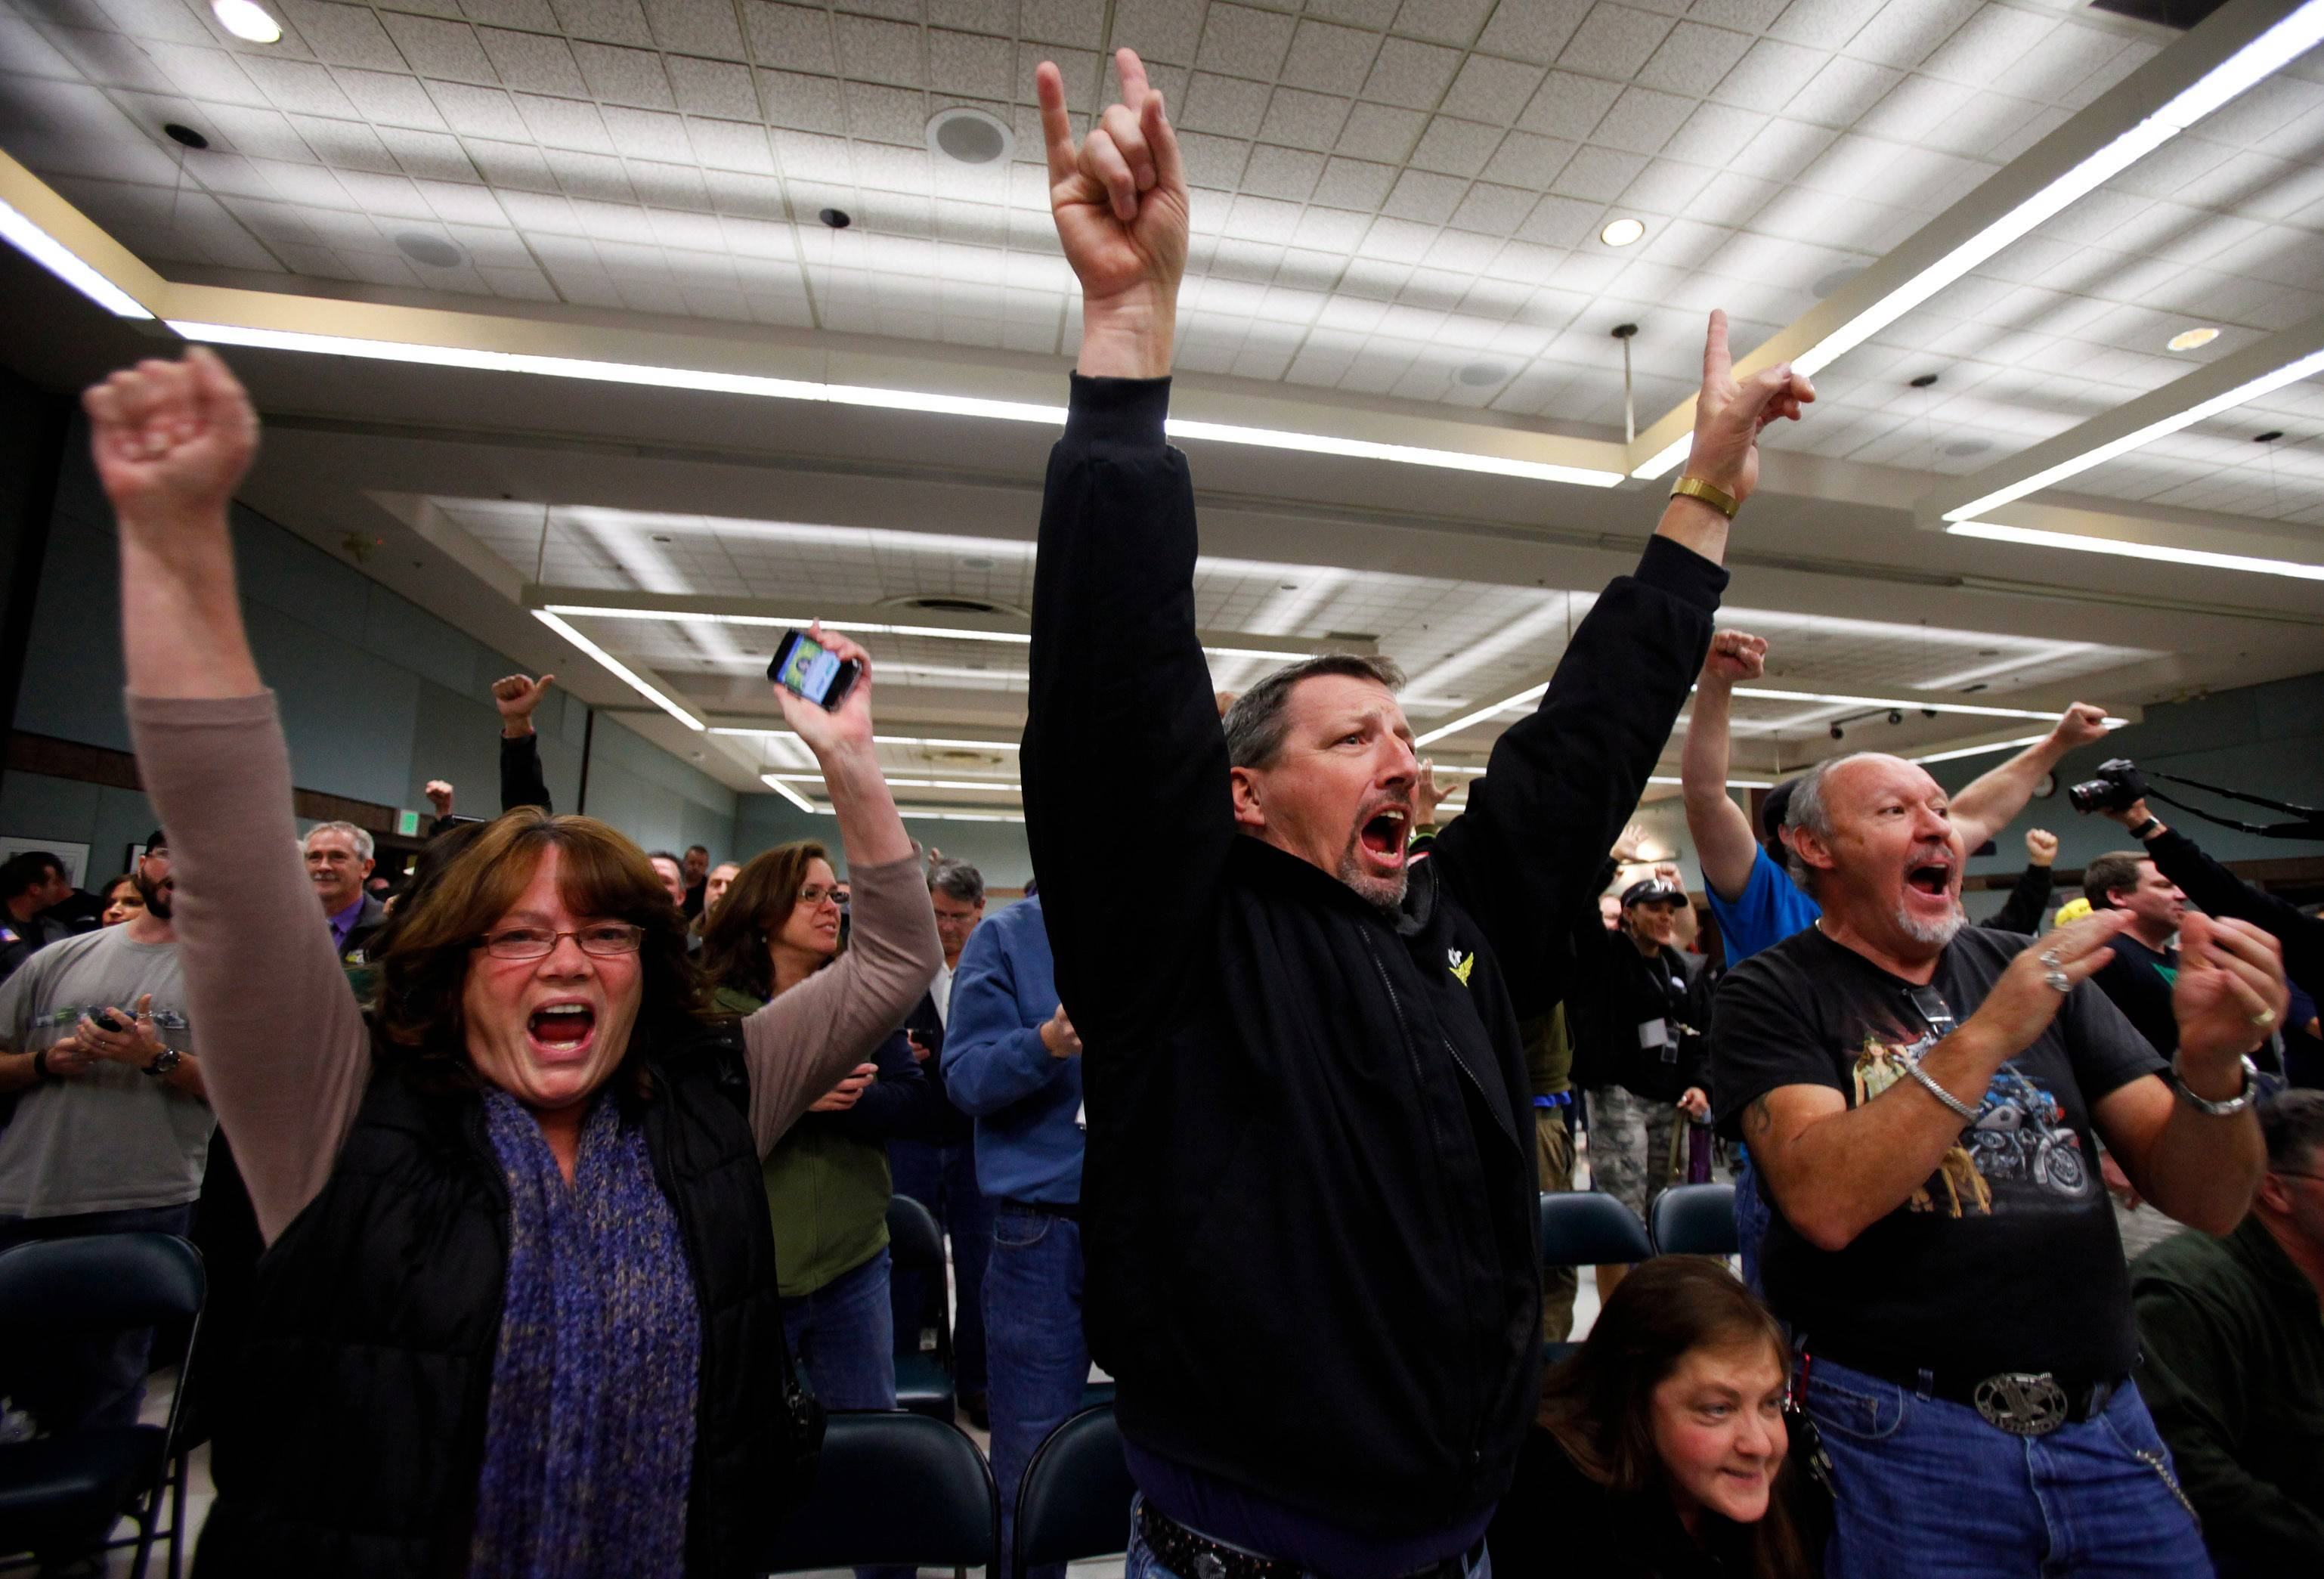 Union members celebrate the turn down of the proposed Boeing Corporation contract Wednesday night at the Internal Association of Machinists District 751 Headquarters in Seattle.